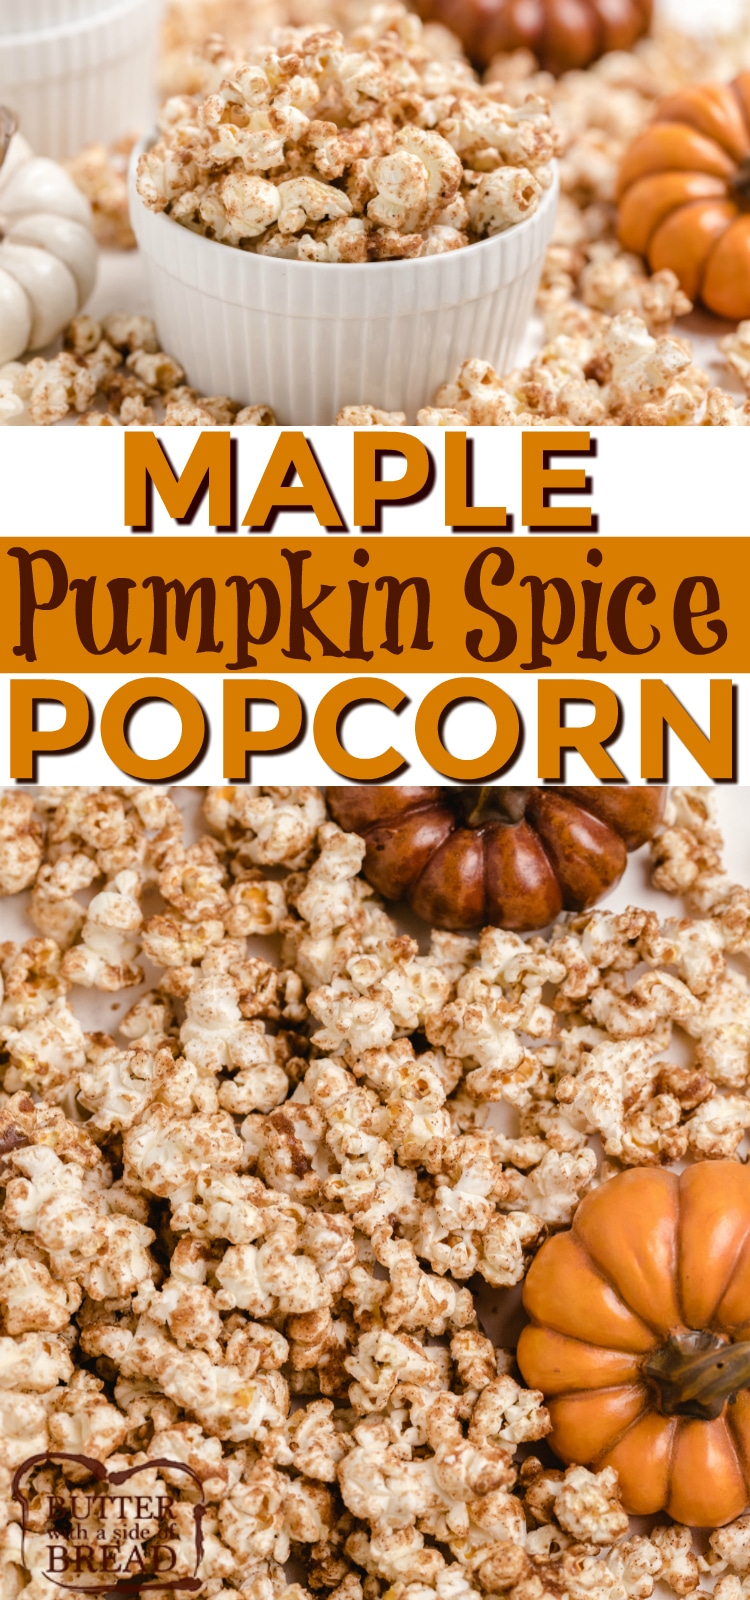 Maple Pumpkin Spice Popcorn is a little bit like caramel popcorn, but full of fall flavors. Made with brown sugar, maple syrup, pumpkin pie spice and butter - only 4 ingredients needed to make absolutely delicious popcorn!